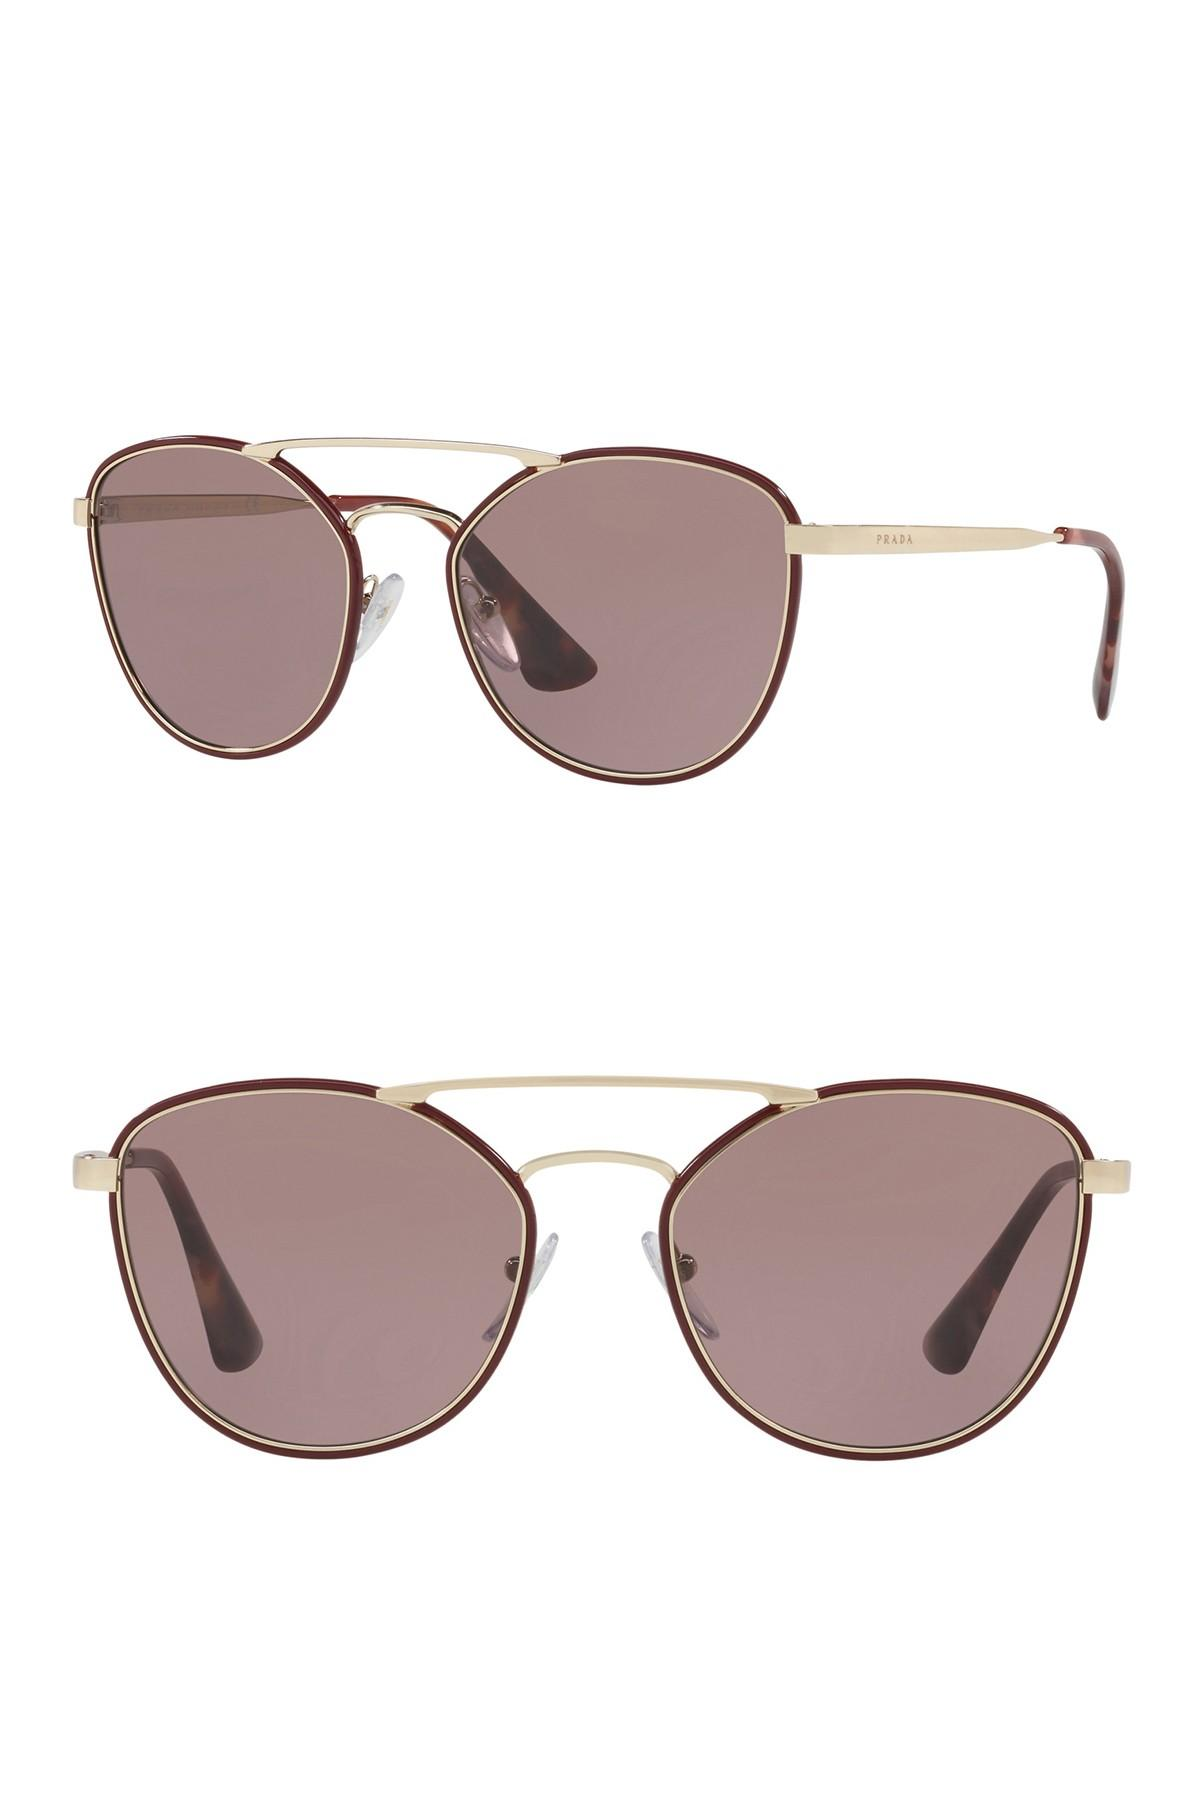 bc601a3a3d Lyst - Prada 55mm Oversized Sunglasses in Brown